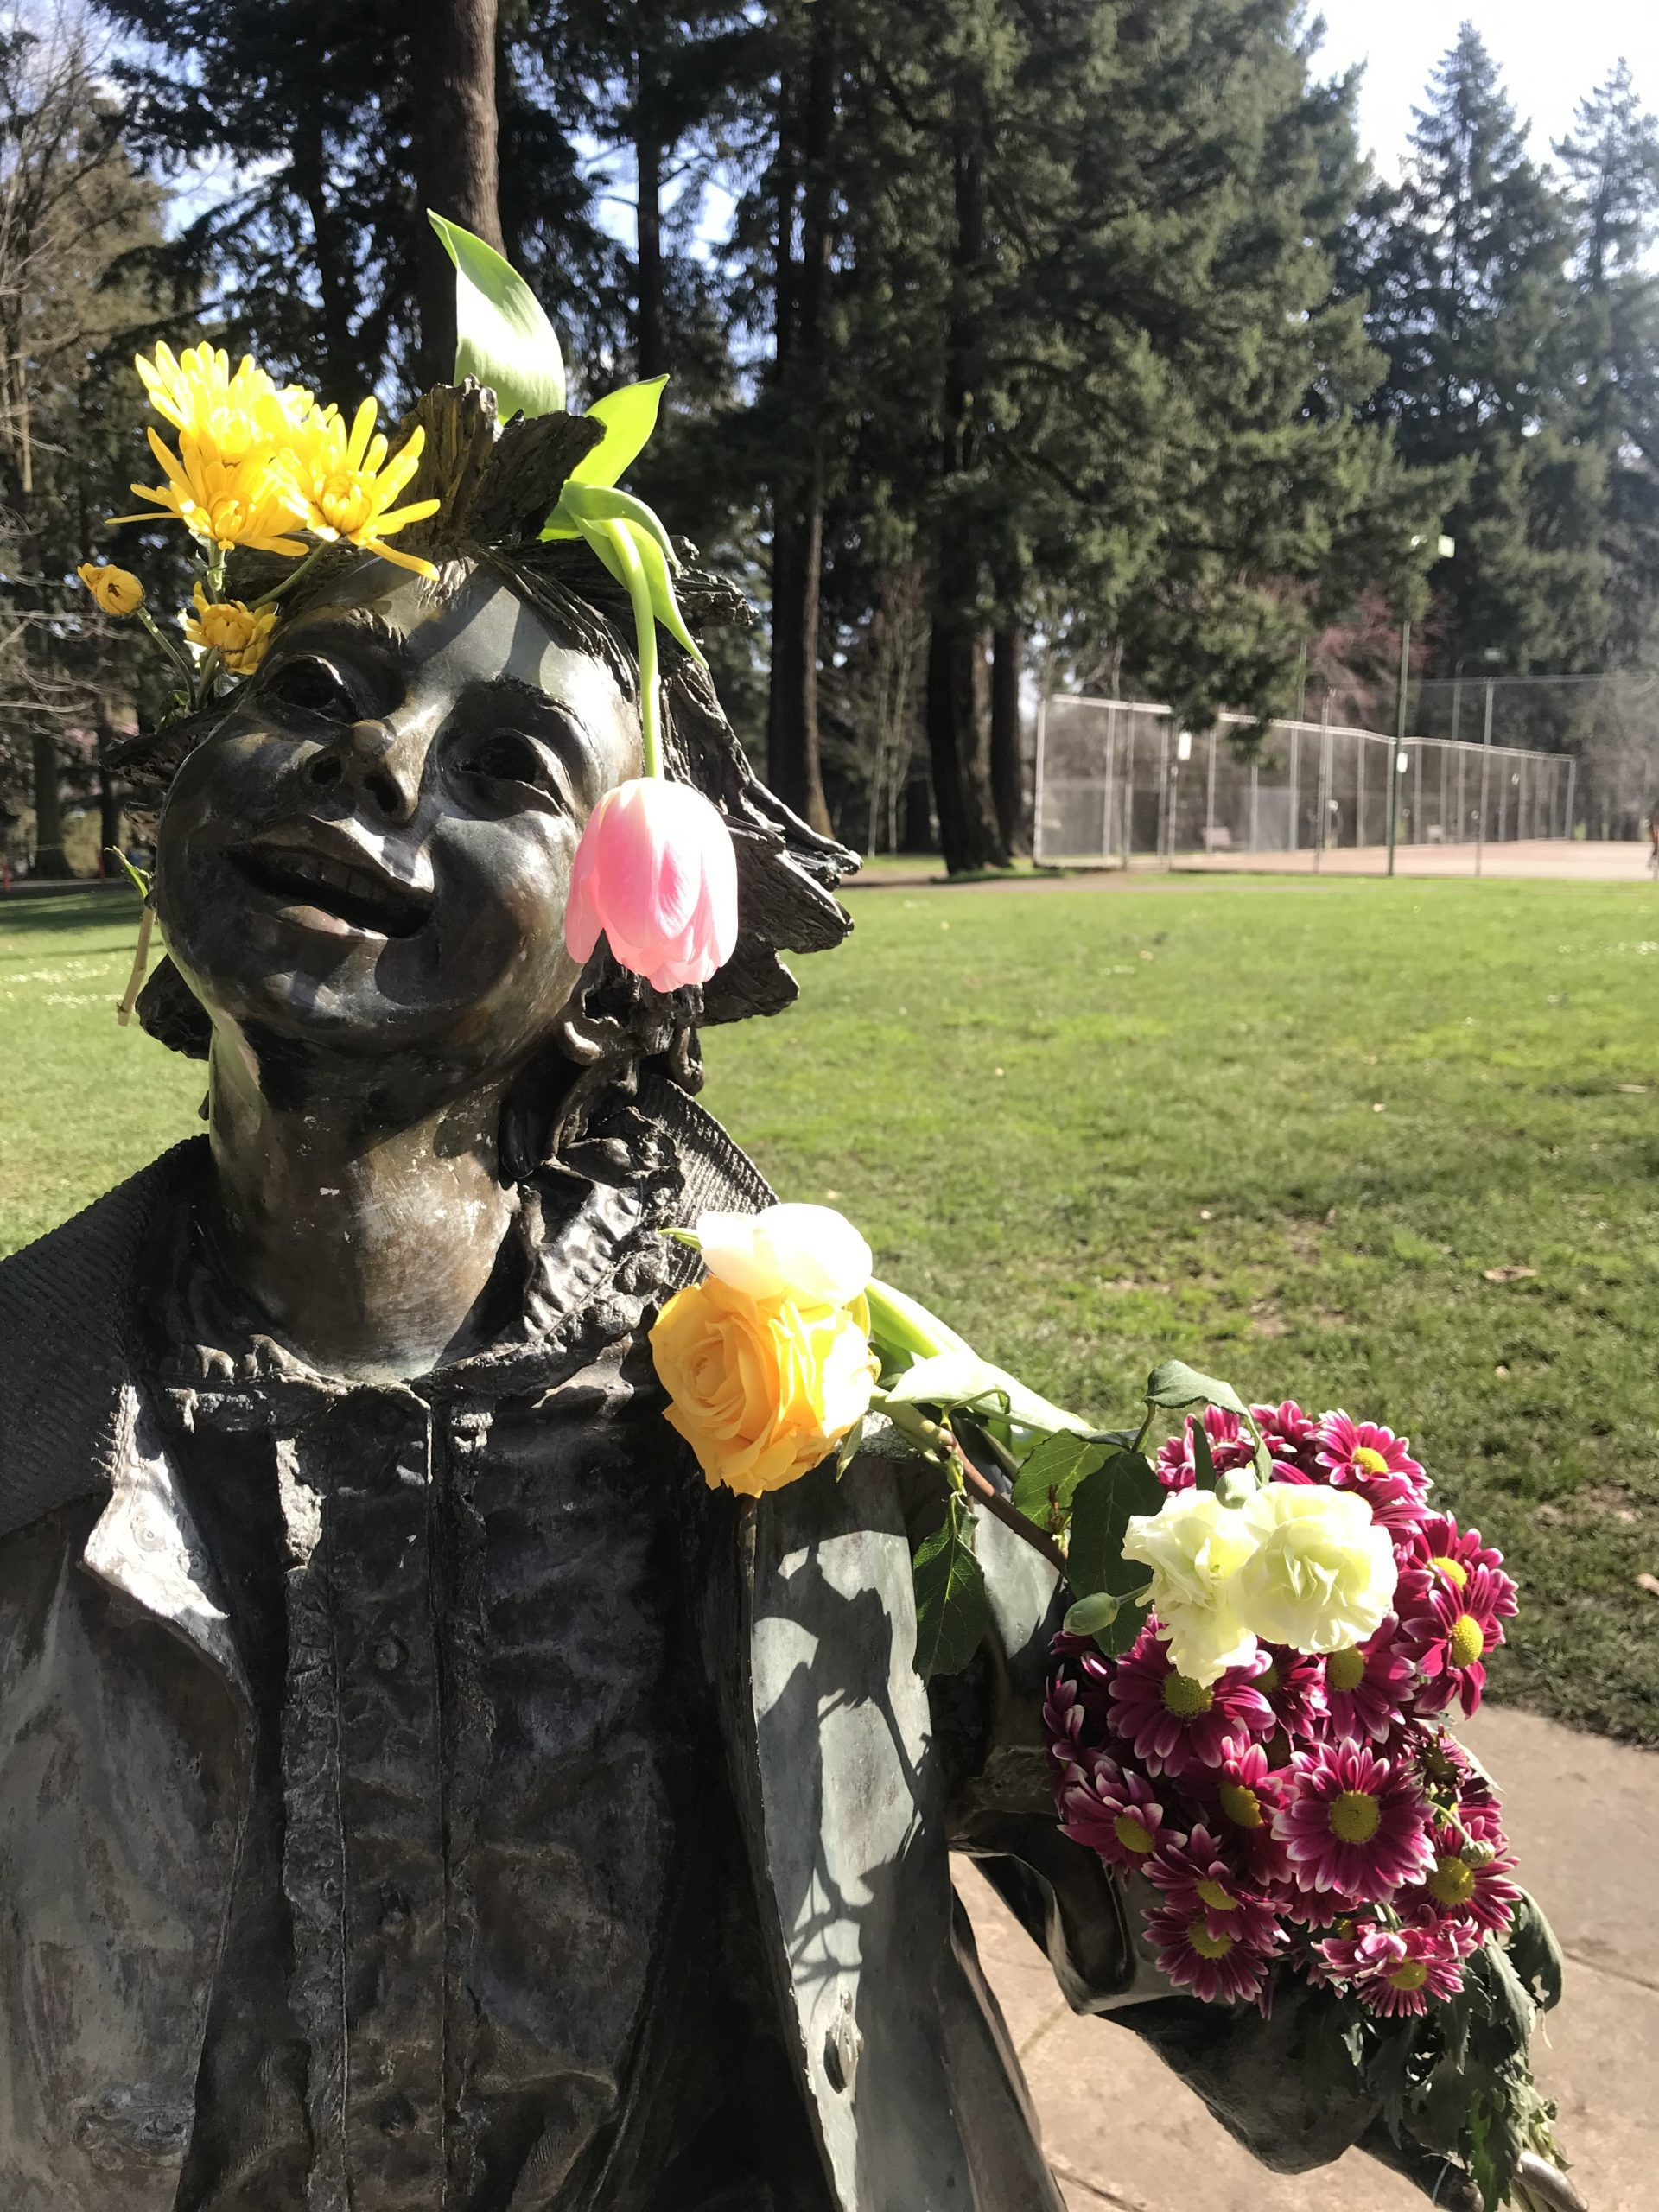 Statue of Ramona with Flowers